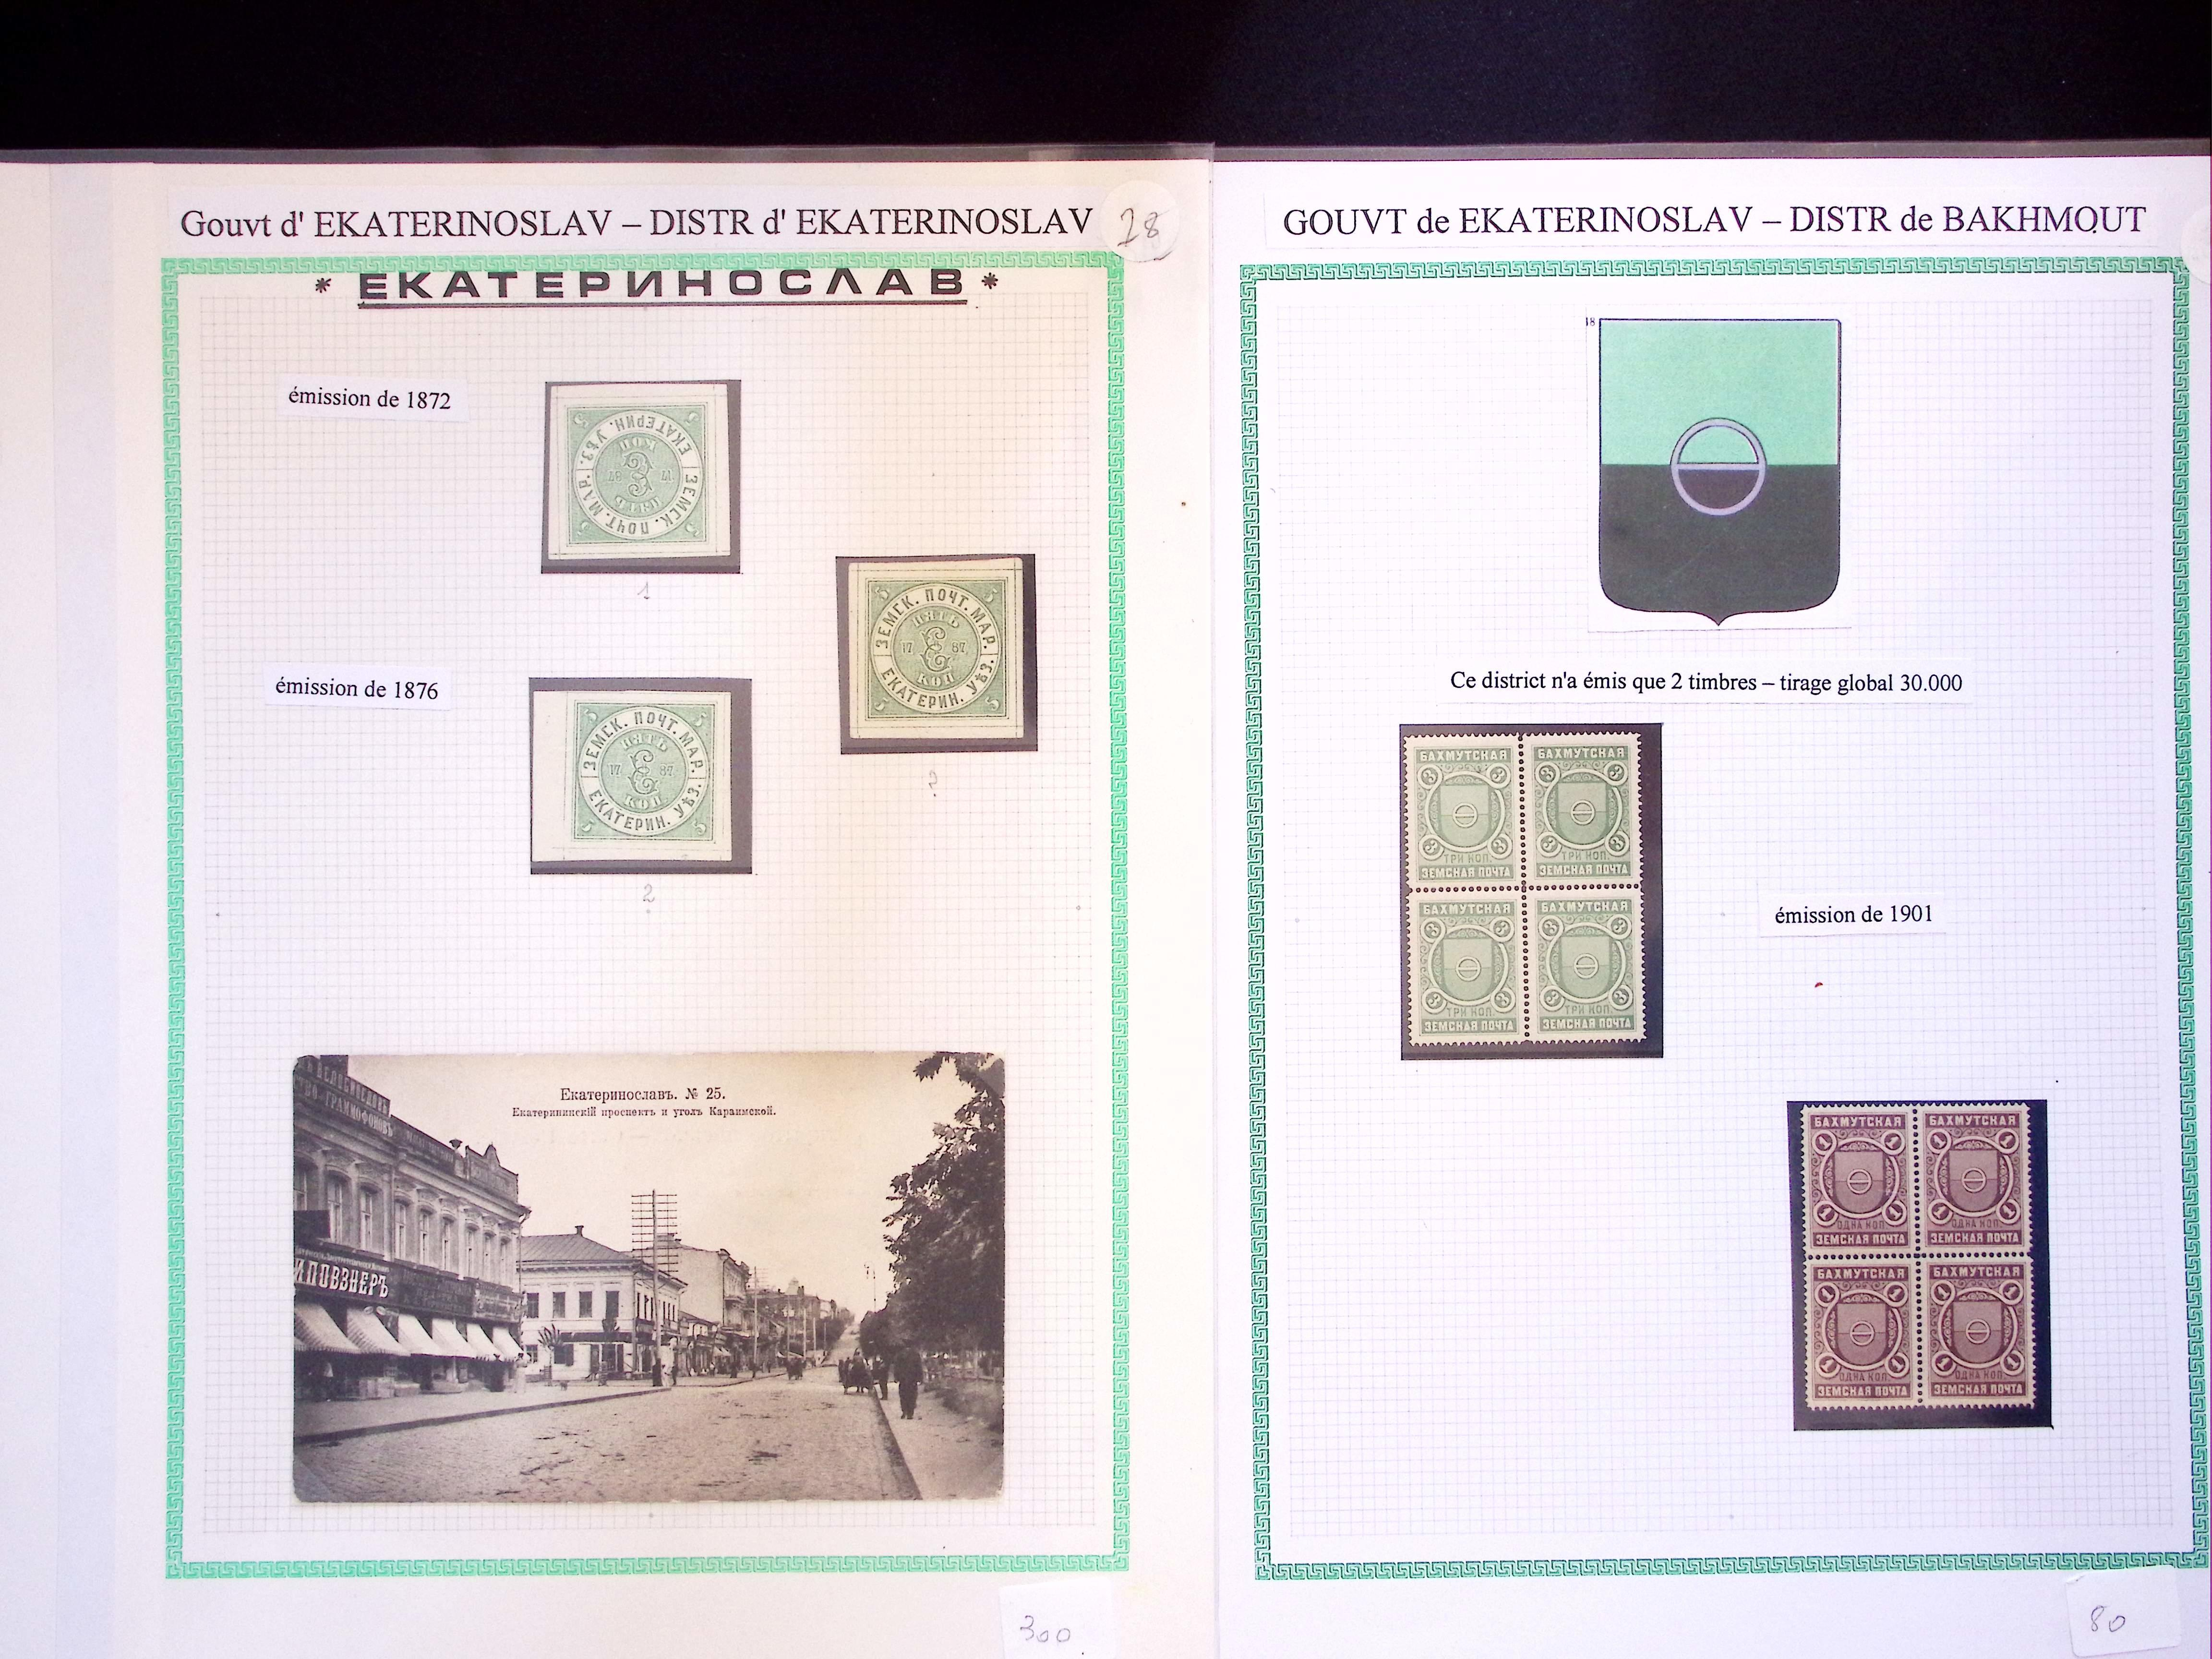 Lot 600 - Eastern Europe » RUSSIA - ZEMSTVOS » Yekaterinoslav (Yekaterinoslav Government)  -  Le Timbre Classique SA SALE ON OFFERS N ° 37 PARIS